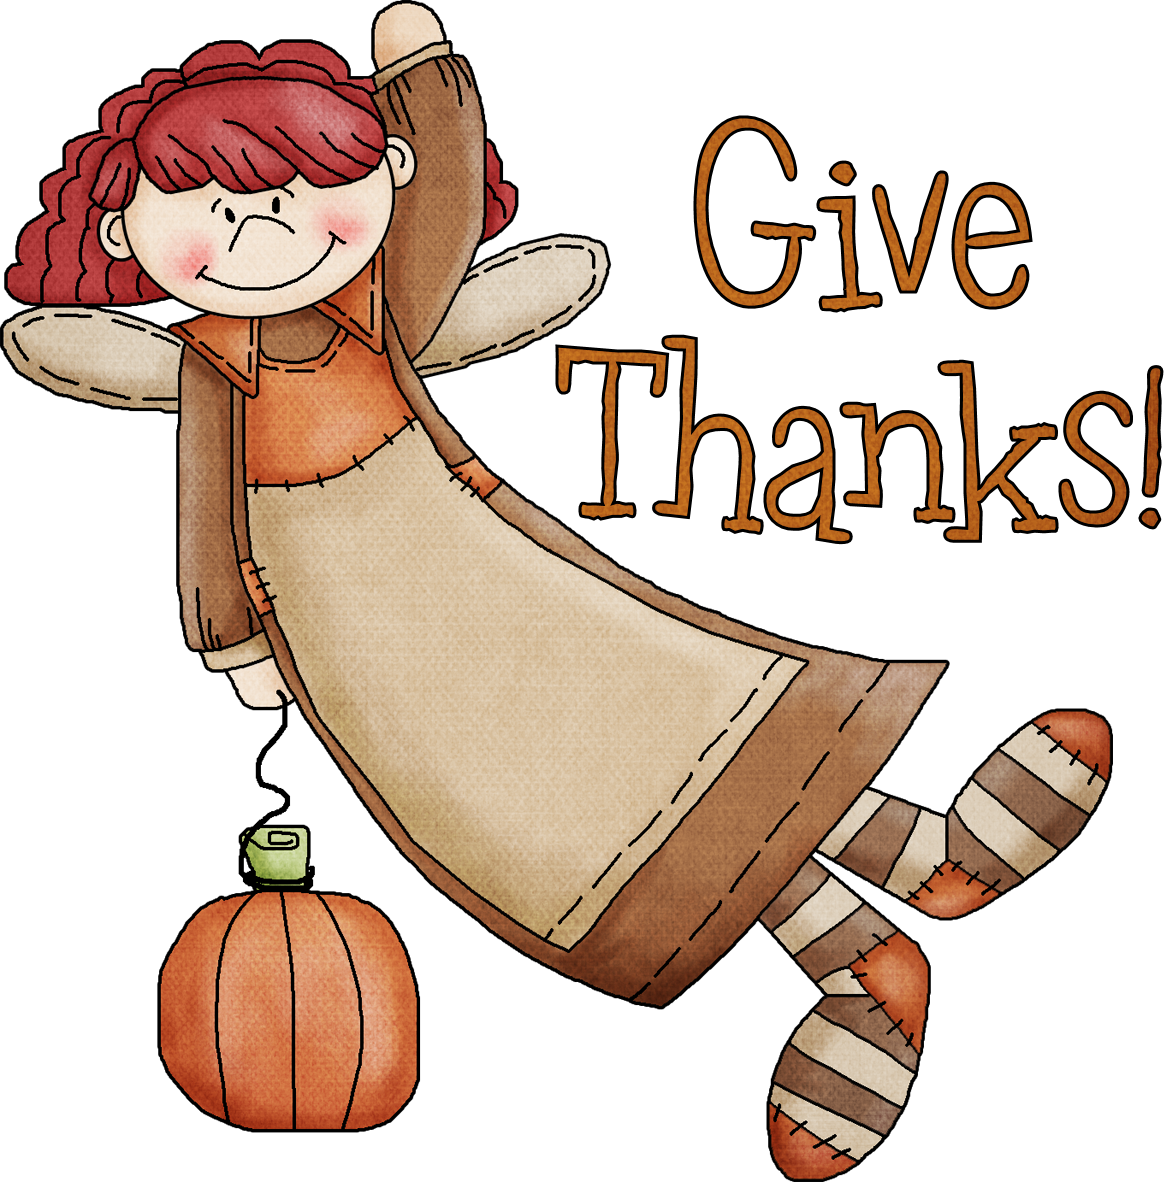 Free Bee Thankful Cliparts, Download Free Clip Art, Free.